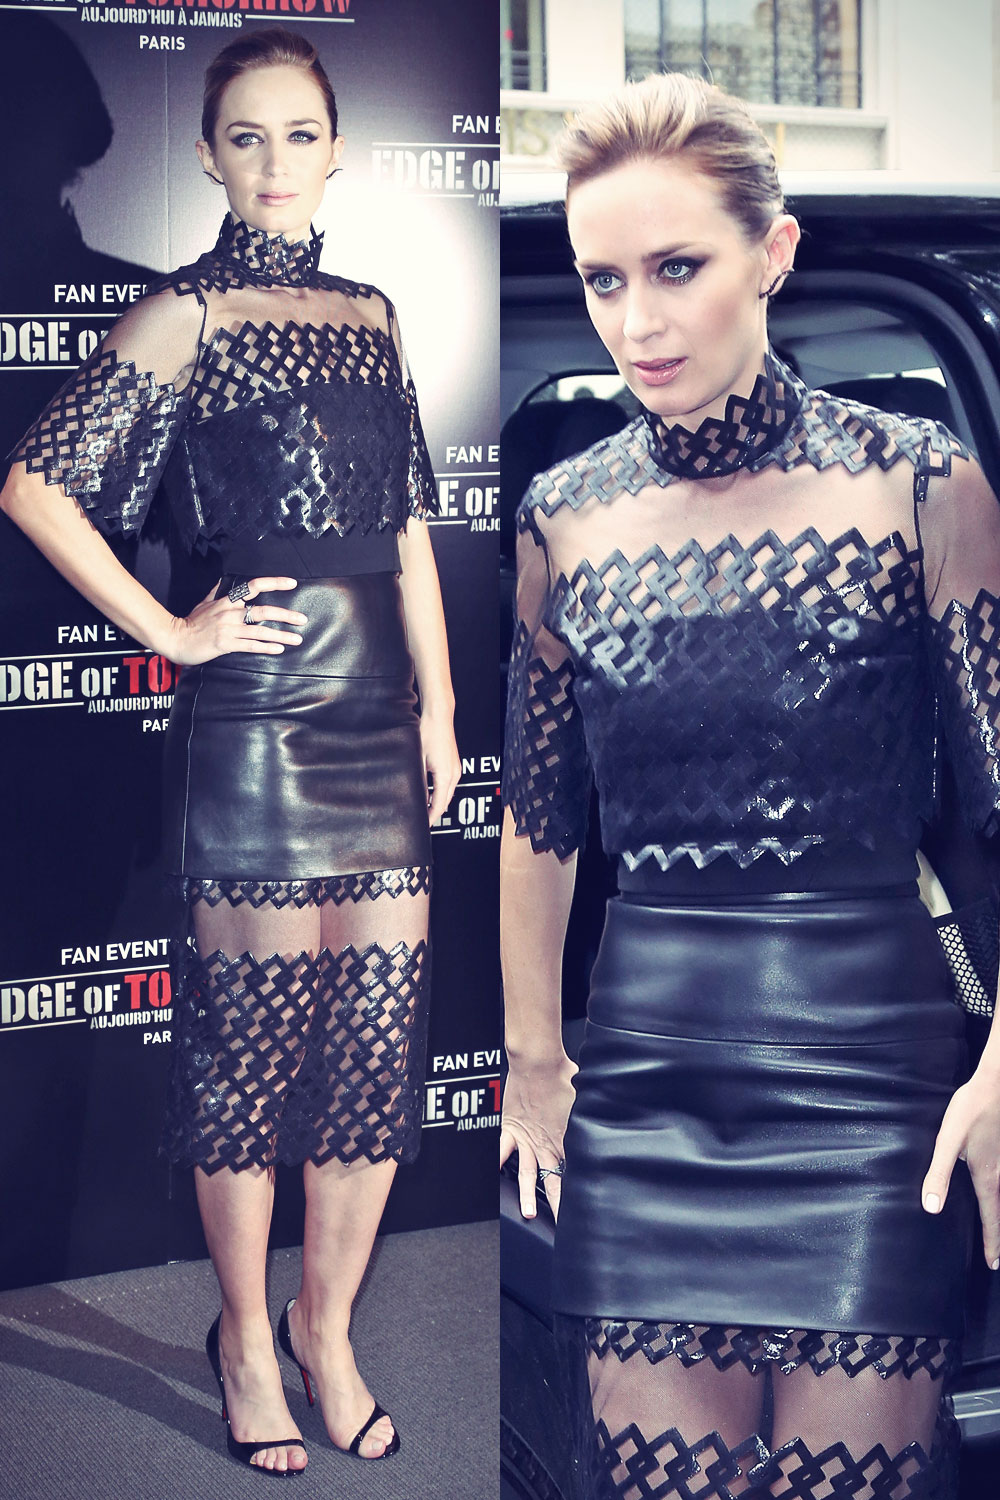 Emily Blunt attends Premiere of The Edge of Tomorrow